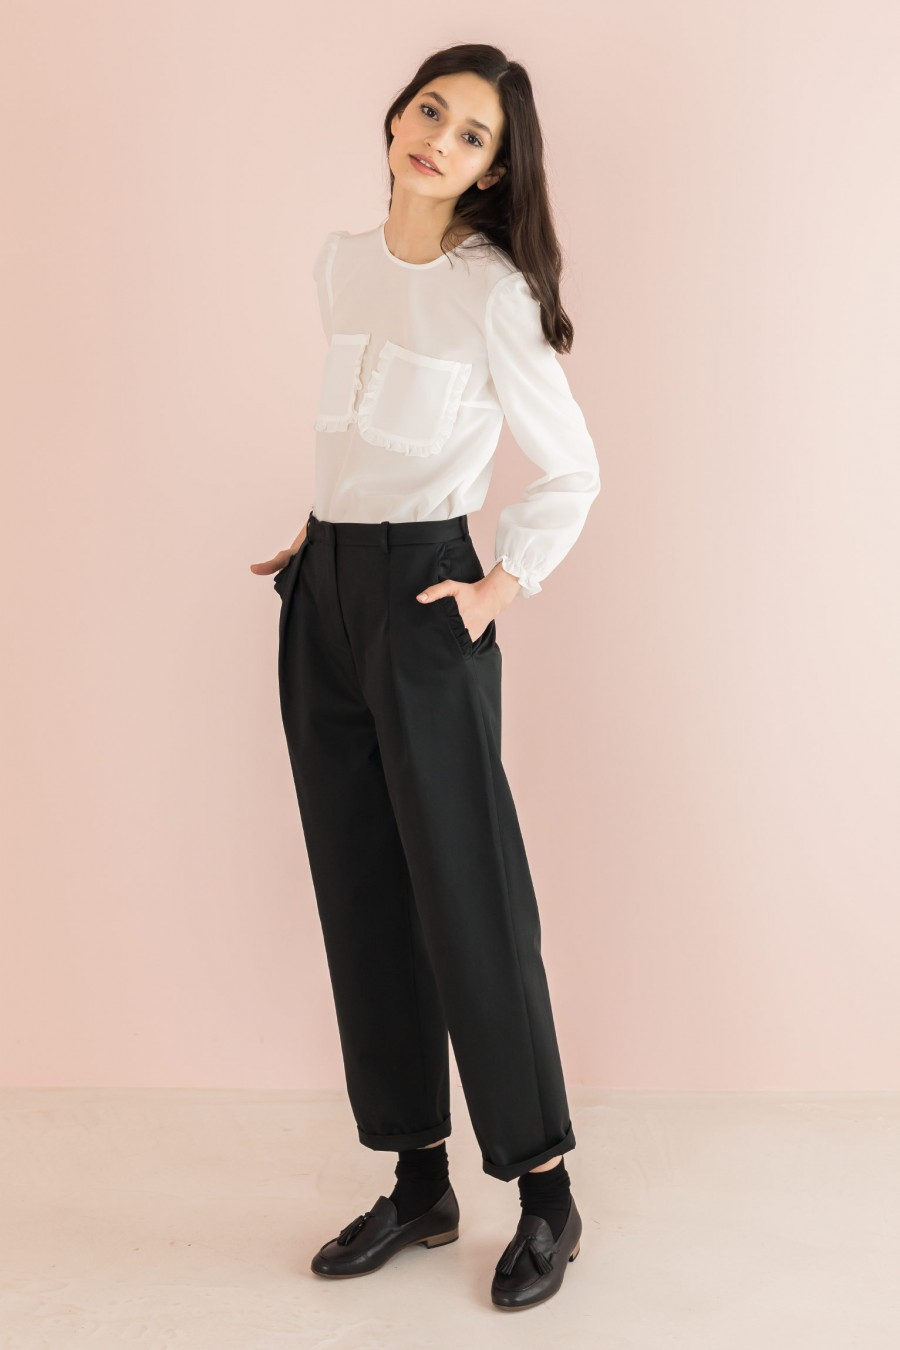 black egg-shaped trousers with ruffles on the pockets